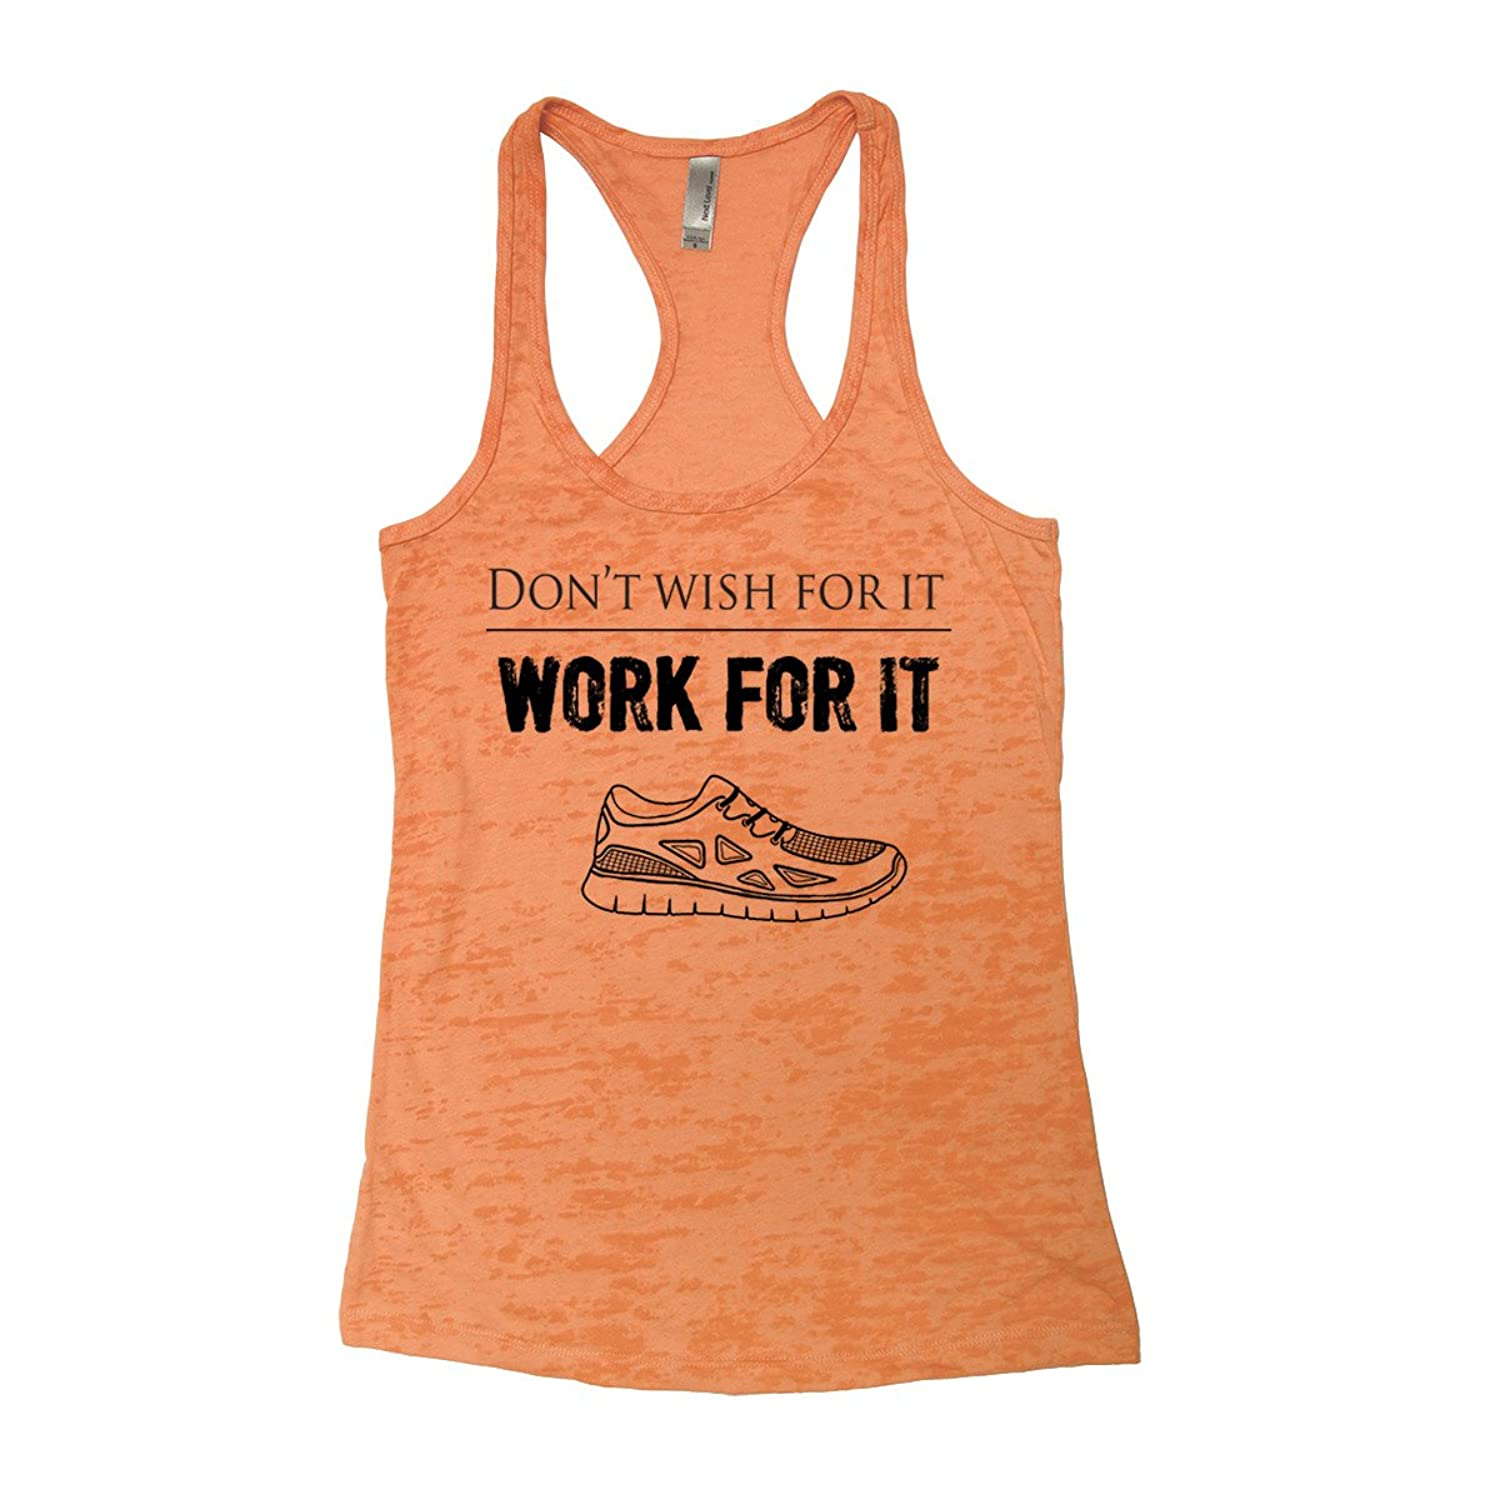 Couthclothing Women's Work for It Burnout Tank Top